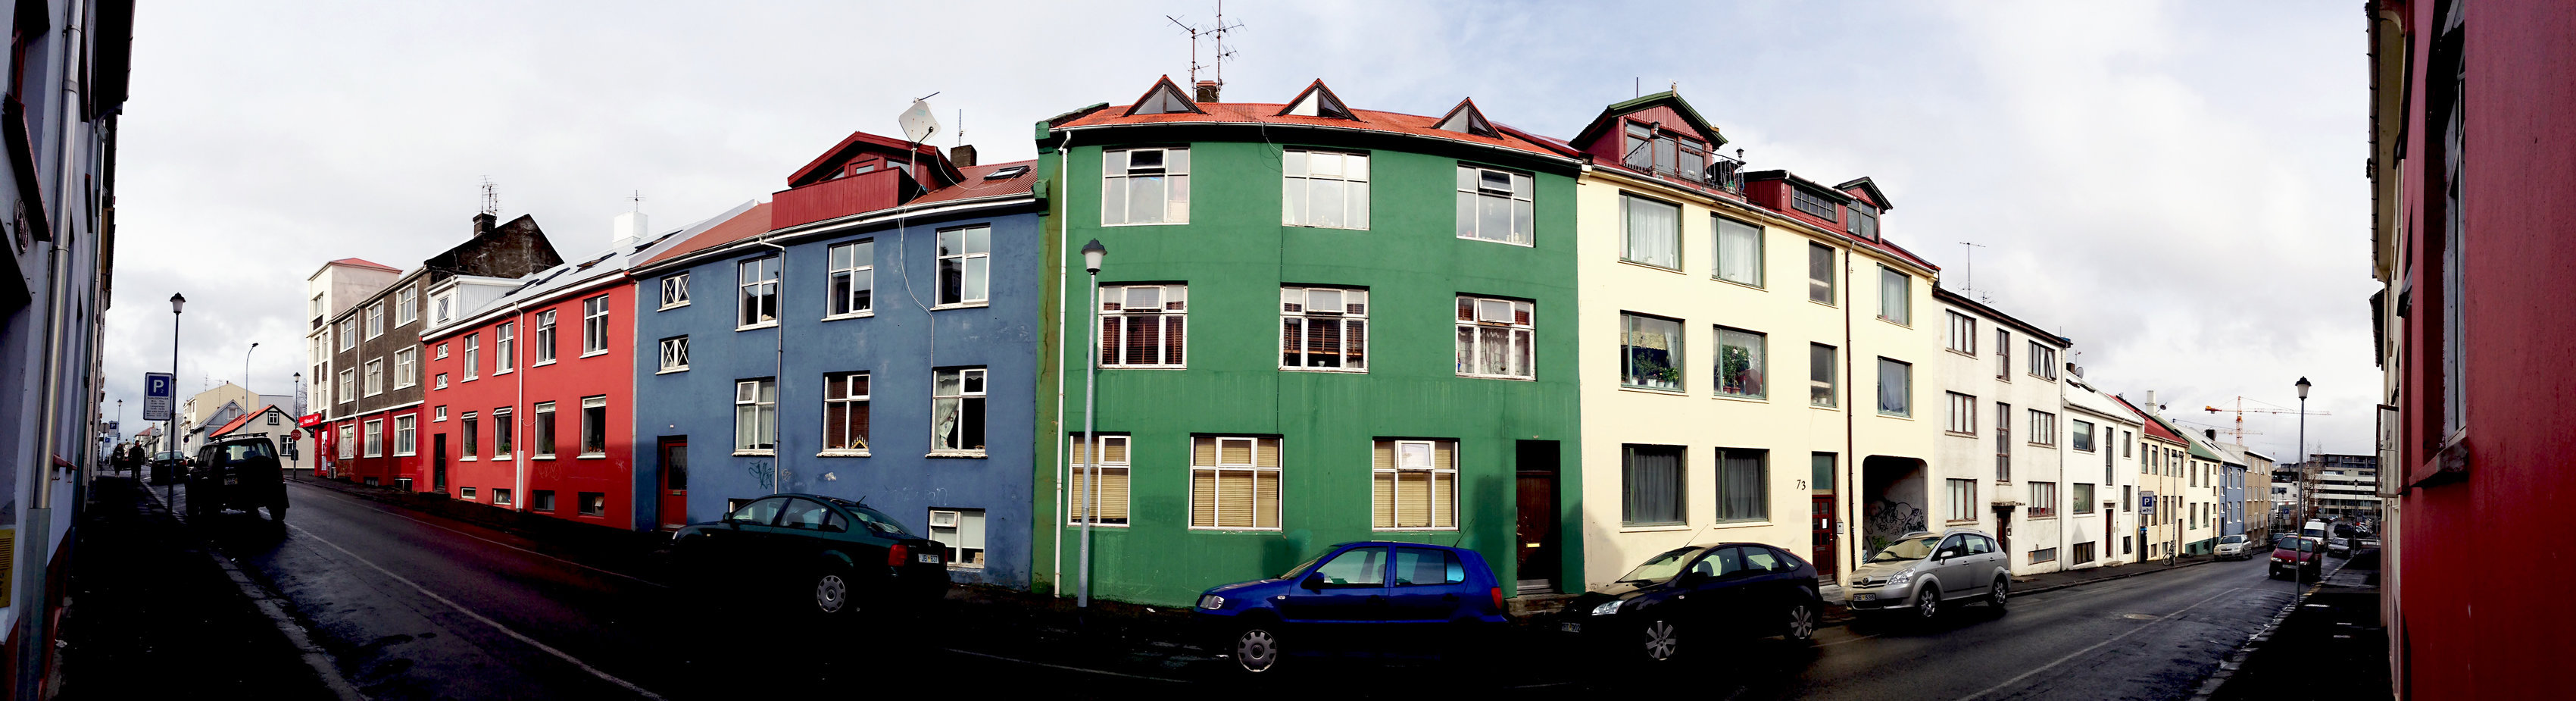 © CORDAY - Iceland, No. 208 - Red, Green, Blue